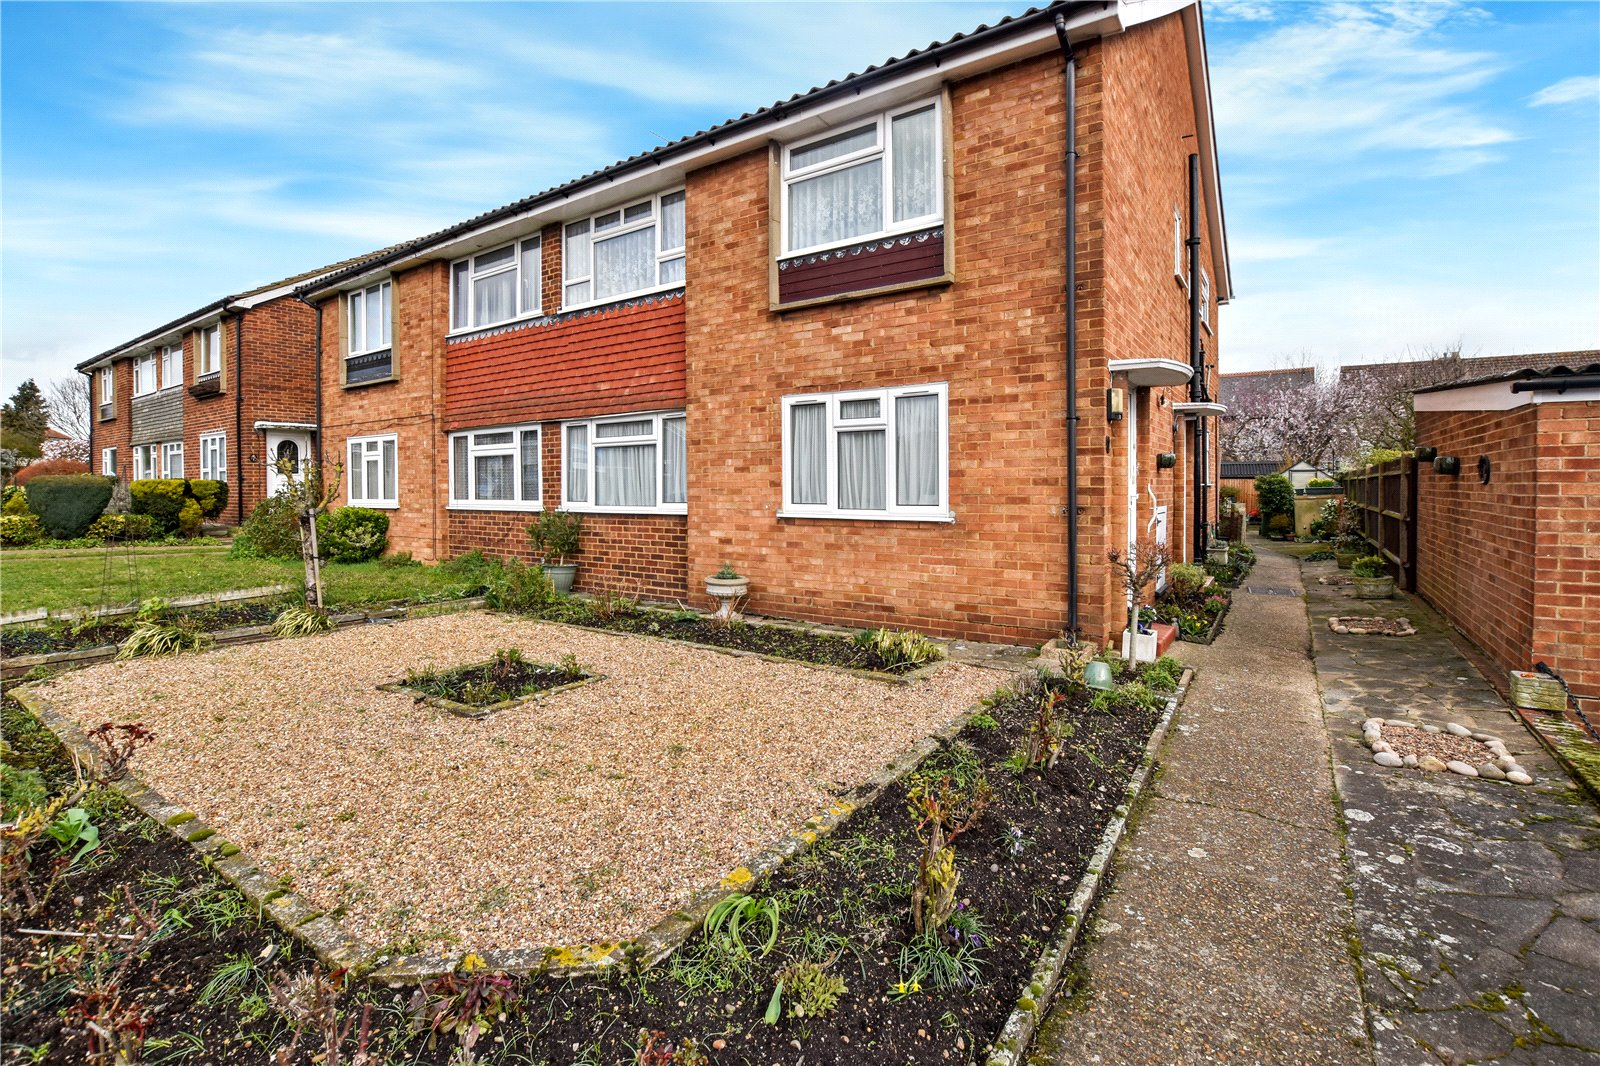 Barton Close, Bexleyheath, Kent, DA6